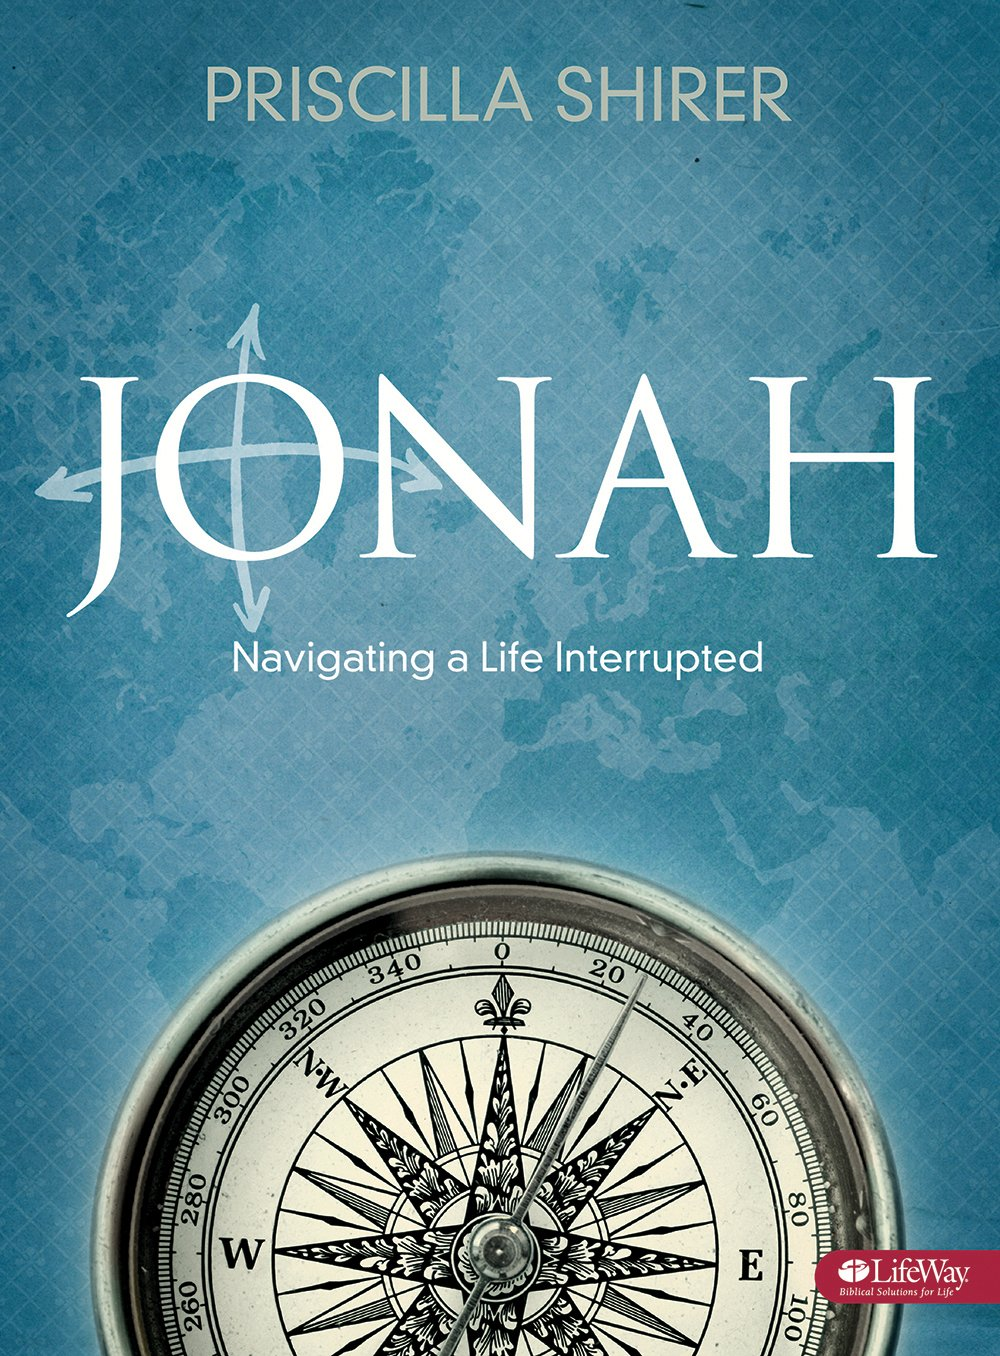 Jonah: Navigating a Life Interrupted (Bible Study Book): Priscilla Shirer:  9781415868492: Amazon.com: Books